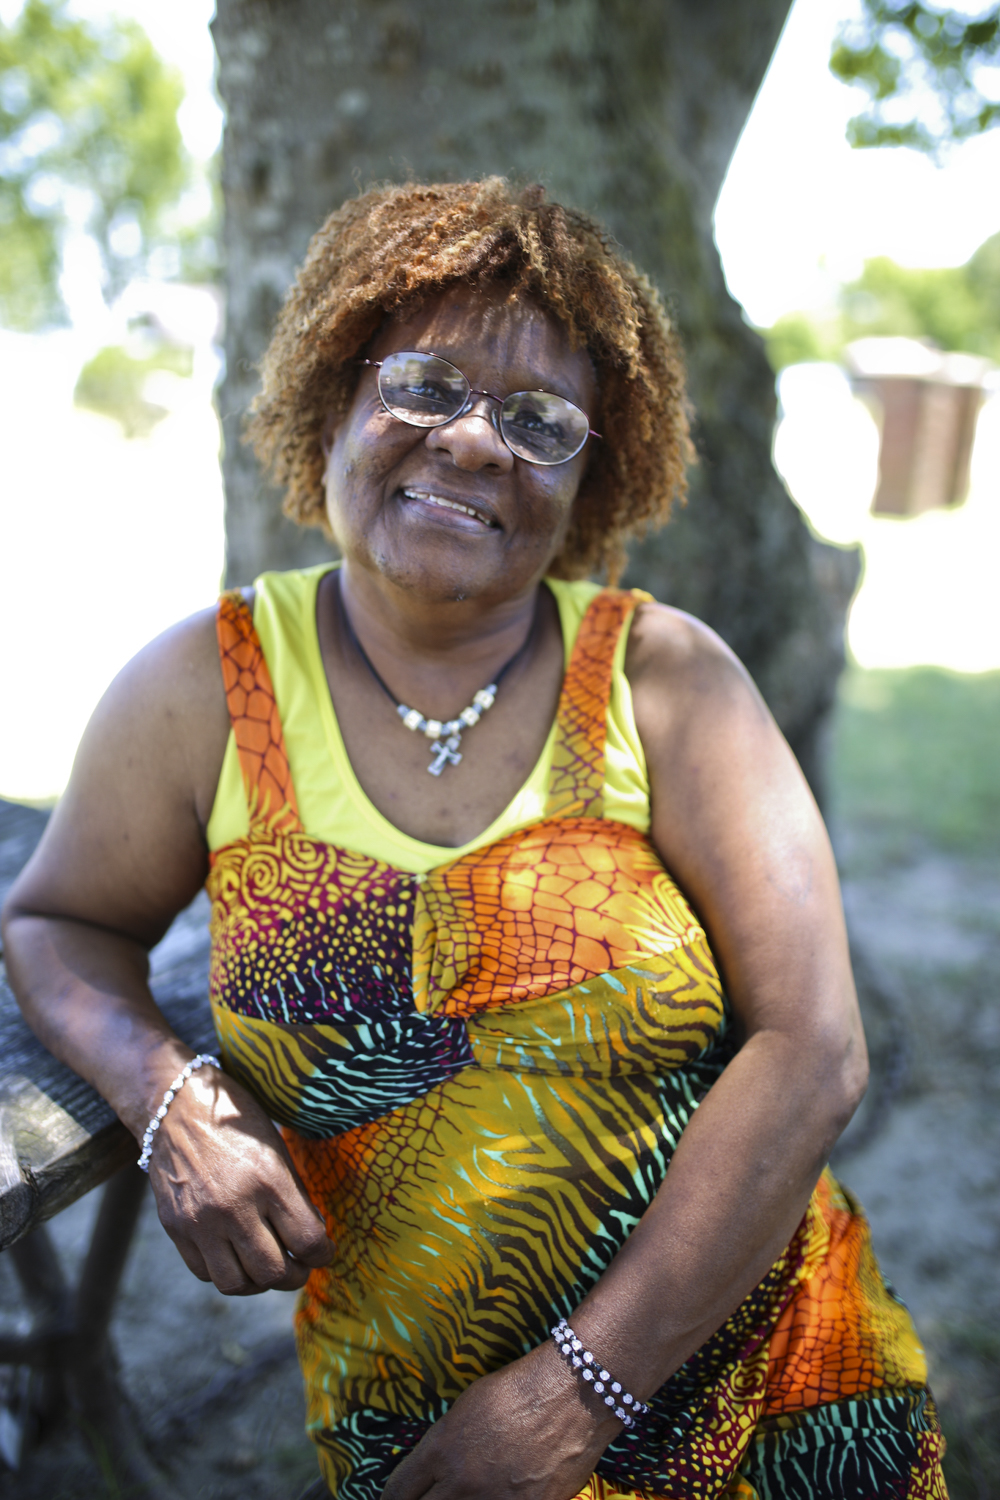 Margaret Swann, of Hopewell, rests in the shade after fishing at City Point Park in Hopewell on Wednesday, June 28, 2017. [Scott P. Yates/progress-index.com]